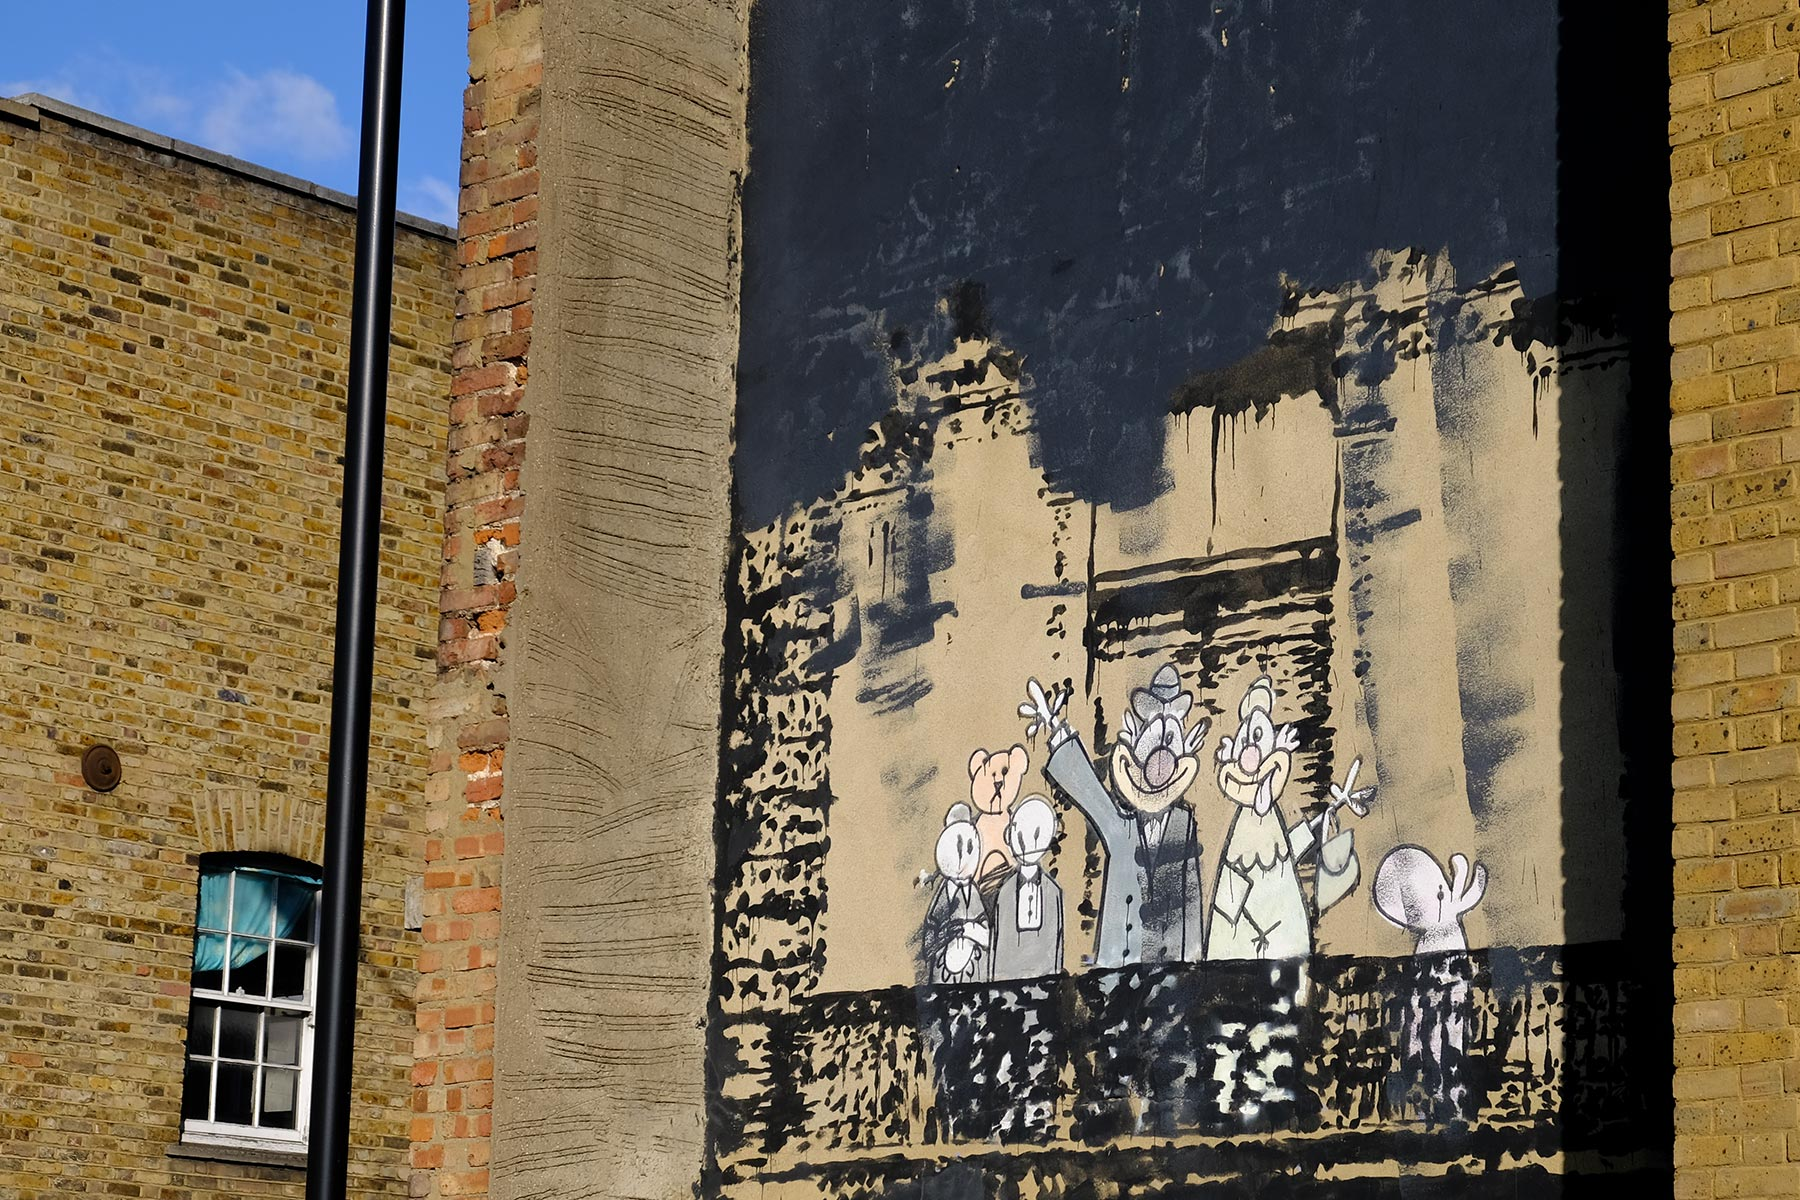 Street Art London - Banksy 'Royal family' - Stoke Newington Church Street, London